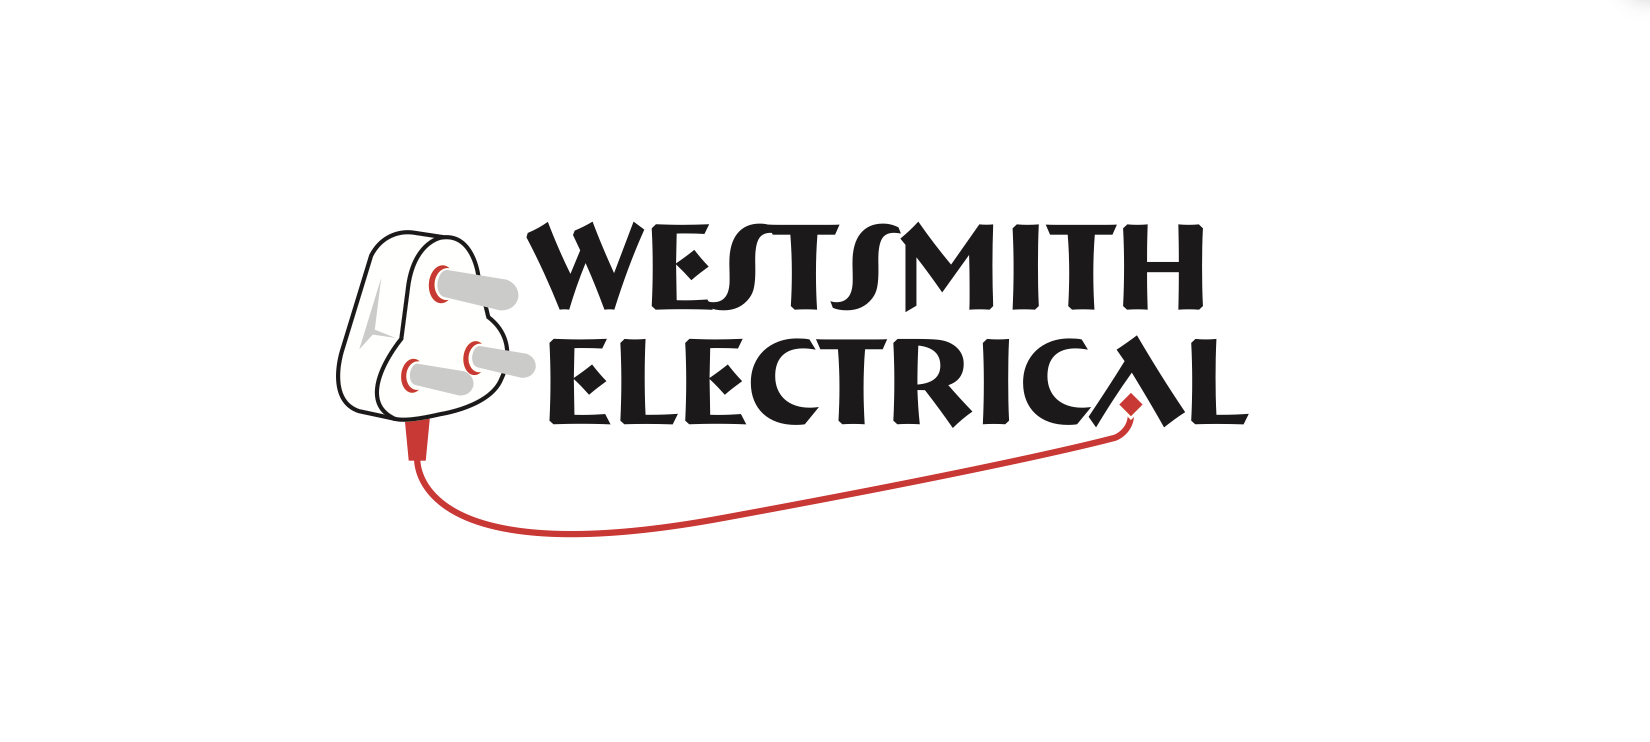 Westsmith Electrical